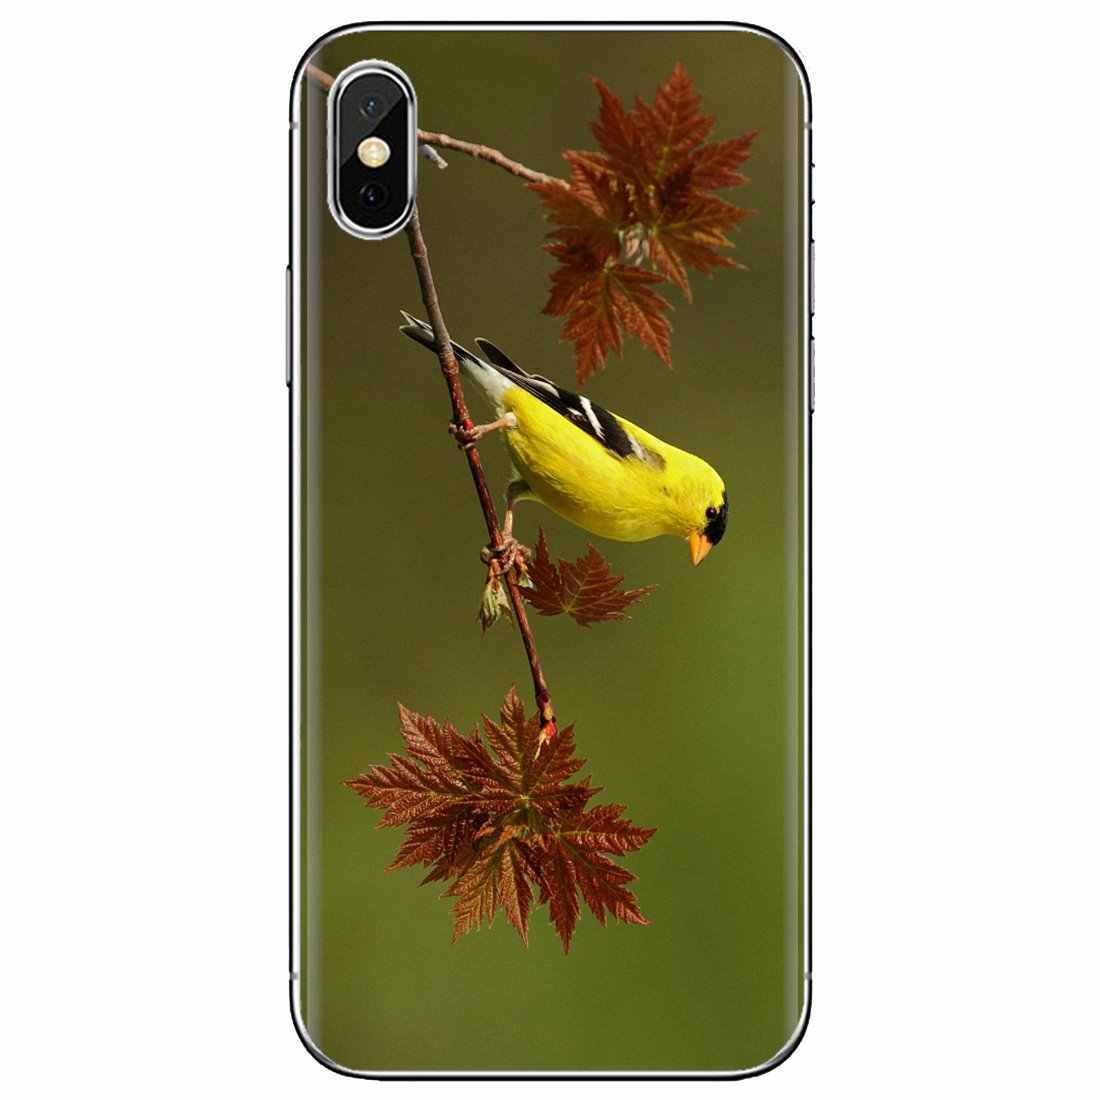 Cheap Silicone Phone Case Yellow Bird Hd Wallpaper For Samsung Galaxy A10 A30 A40 A50 A60 A70 S6 Active Note 10 Plus Edge M30 Fitted Cases Aliexpress